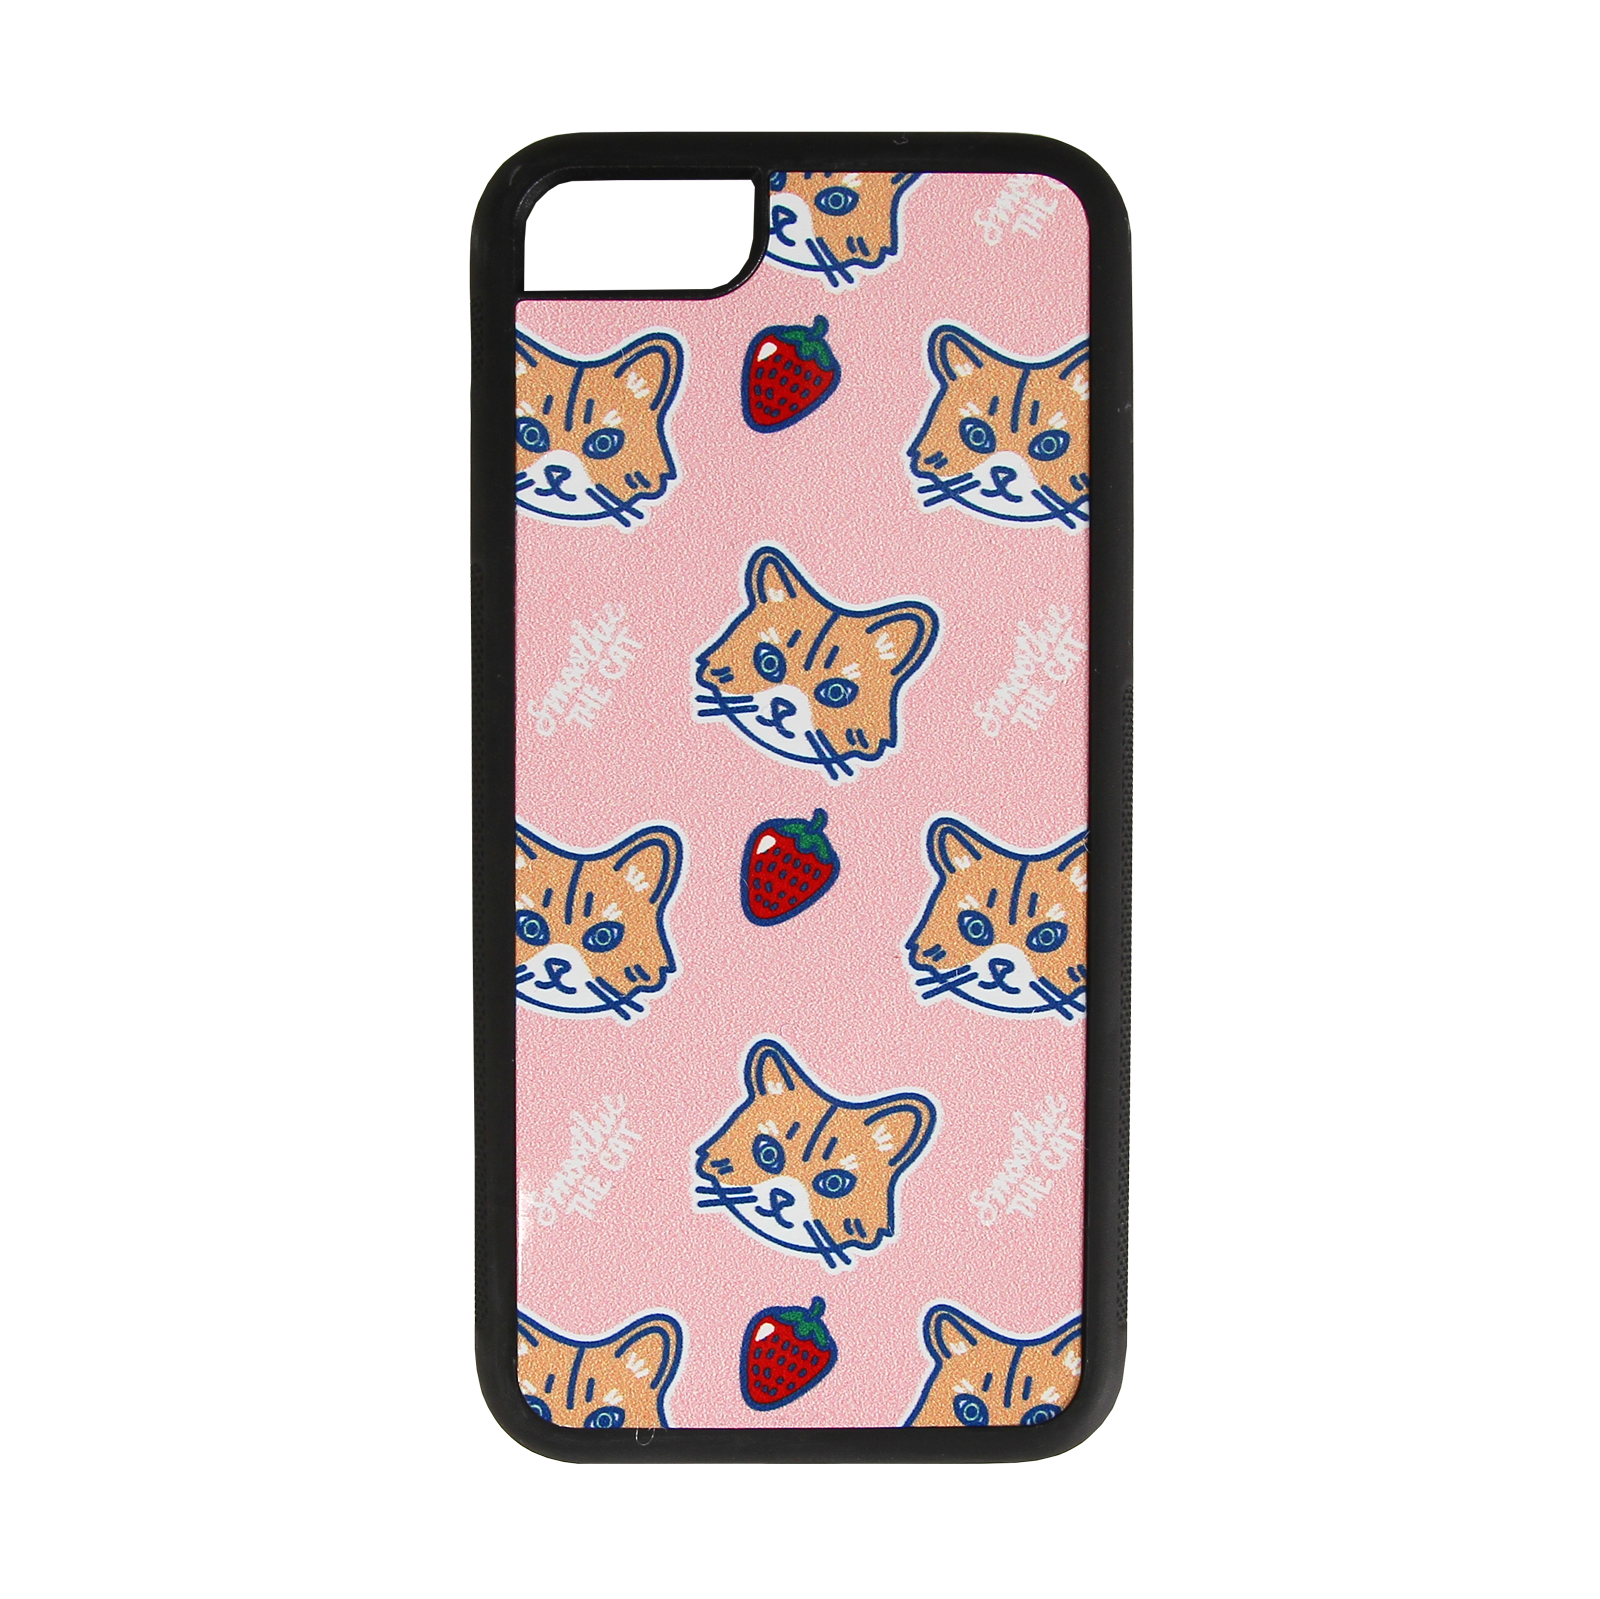 Smoothie - iPhone Case